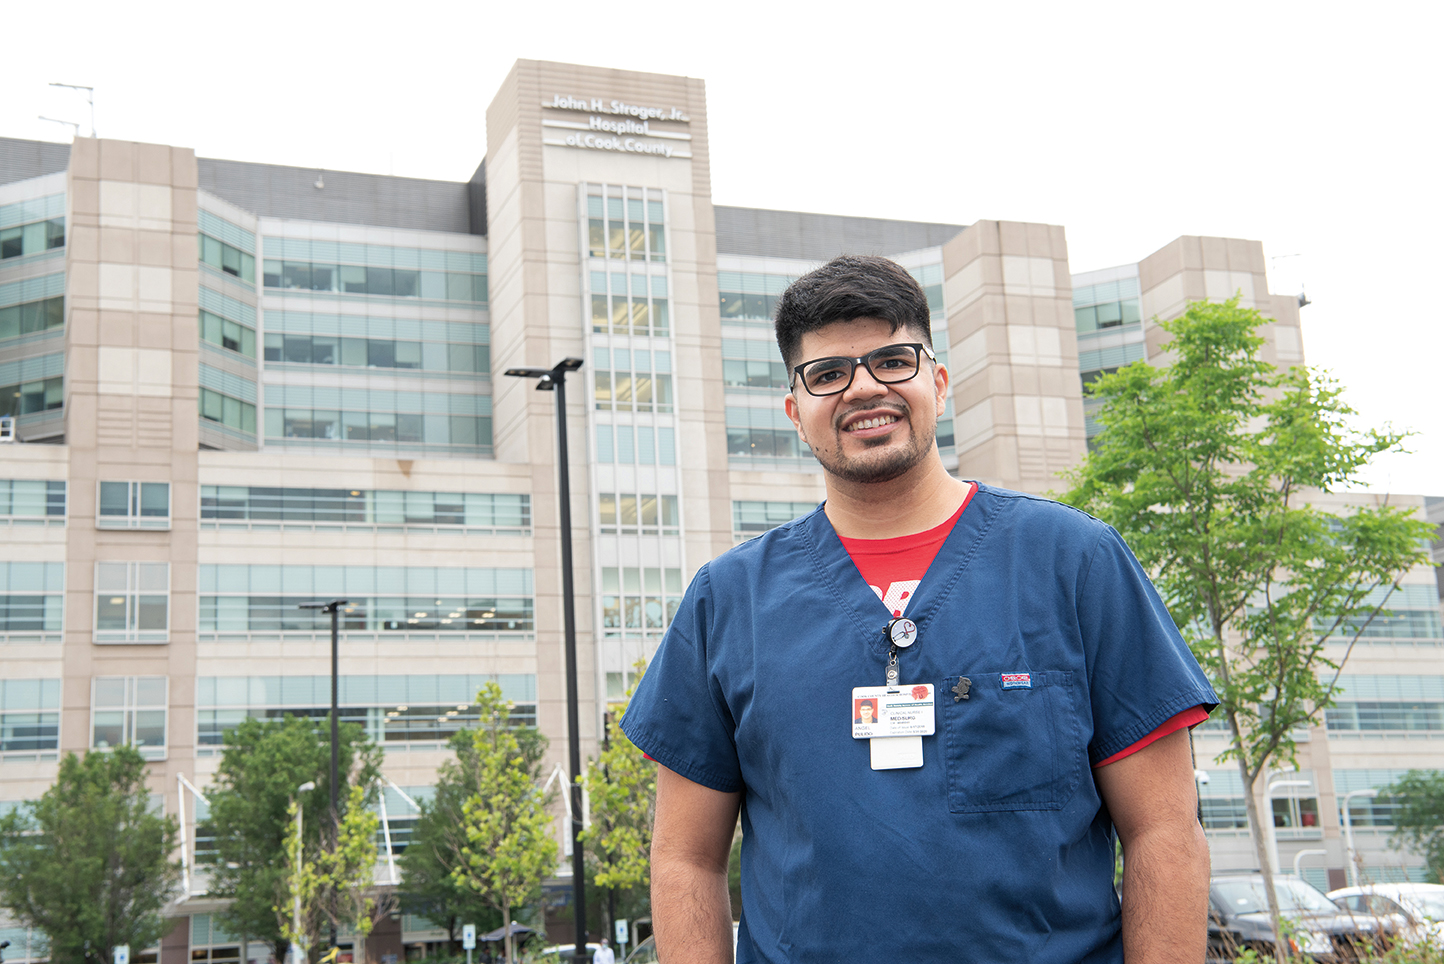 Angel Pulido standing in front of a hospital